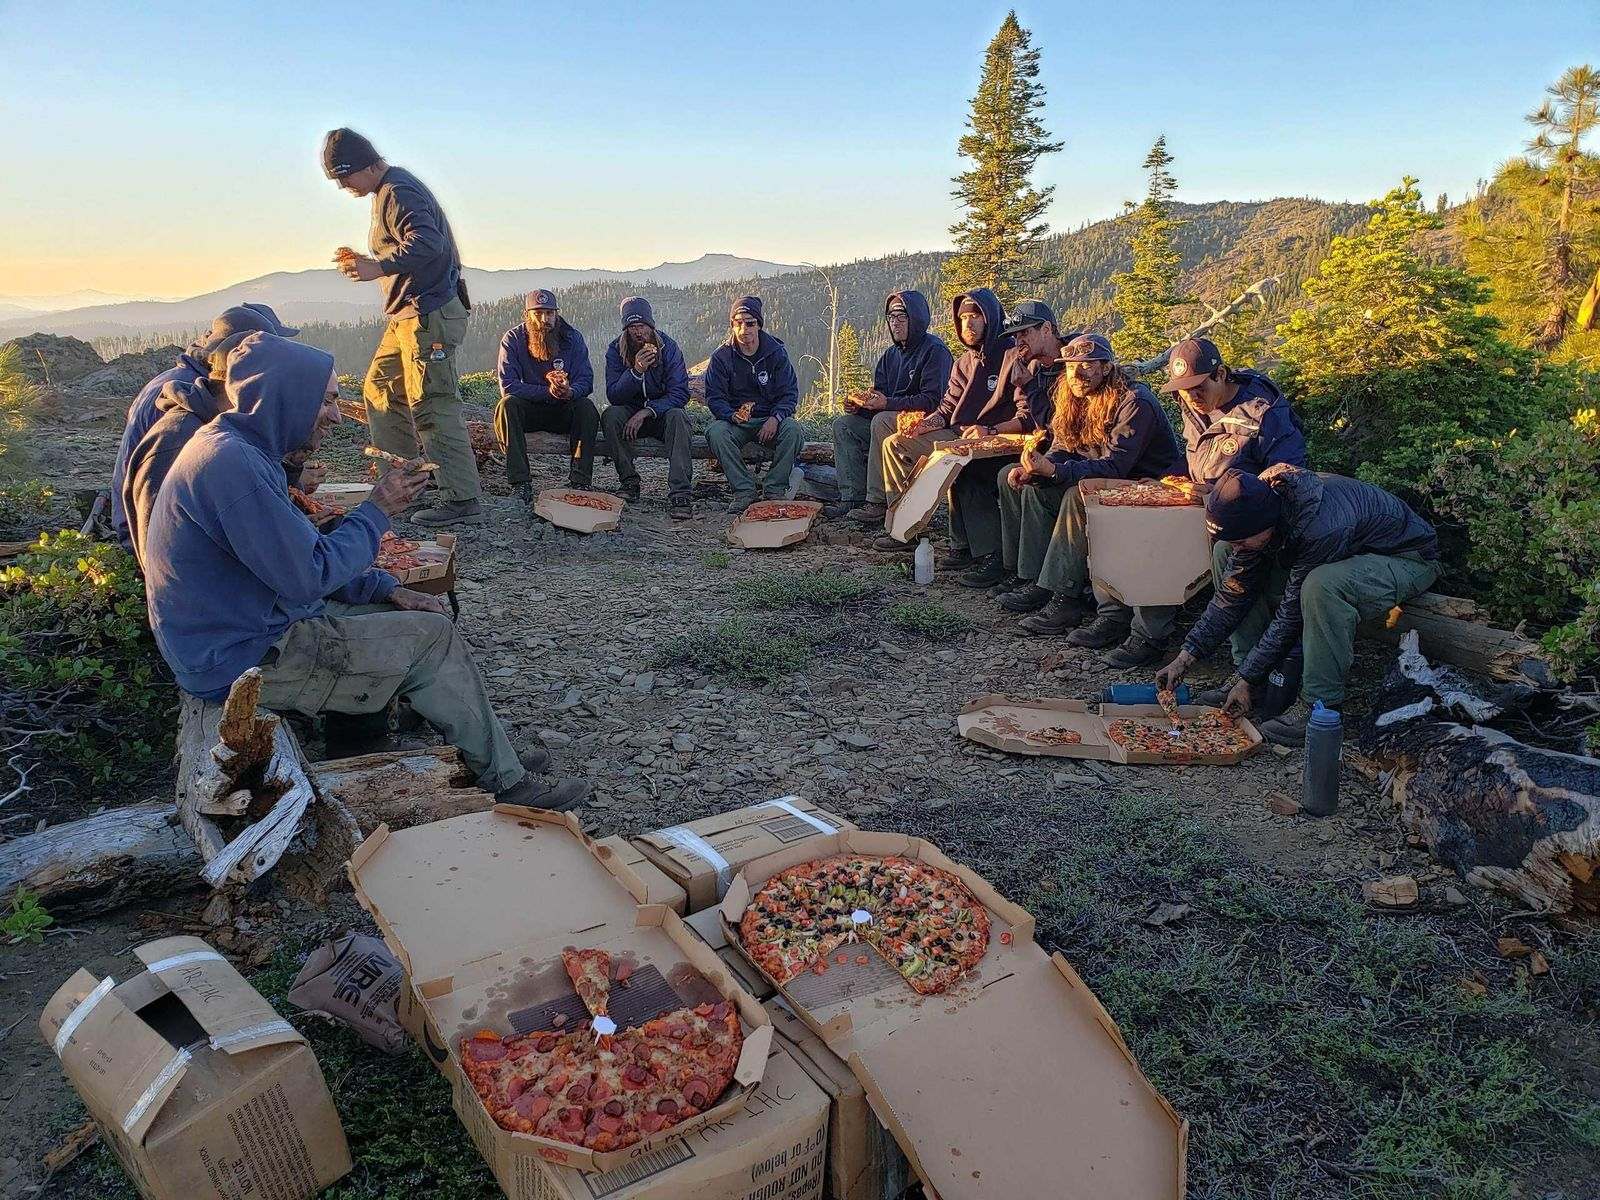 """Dinner Time""{ } -credit US Forest Service, Mendocino National Forest."